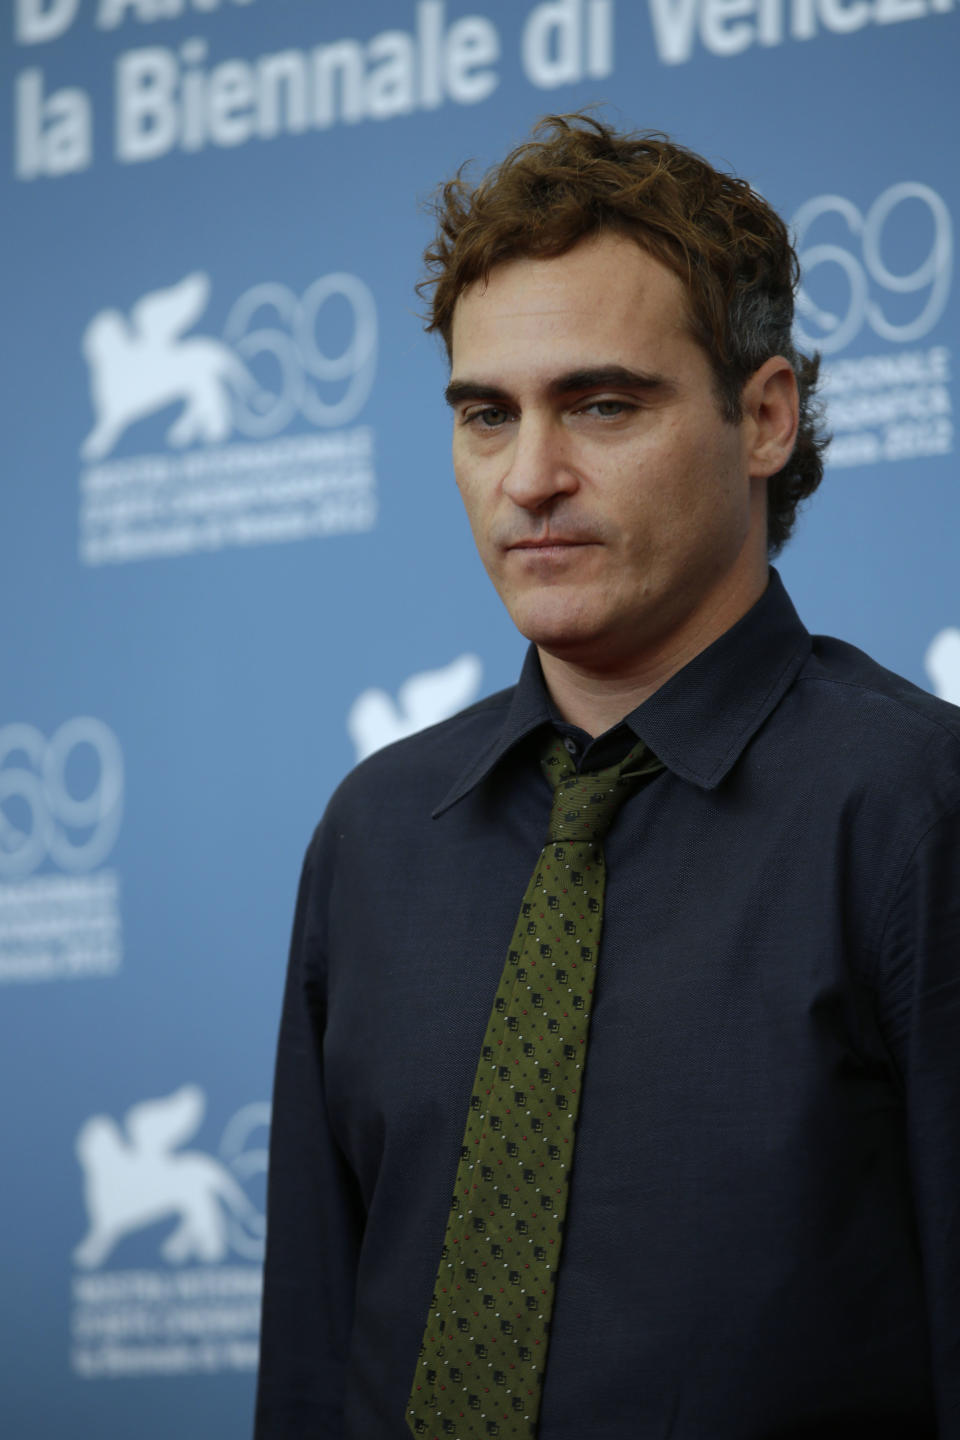 Actor Joaquin Phoenix poses for the photo call for the film 'The Master' at the 69th edition of the Venice Film Festival in Venice, Italy, Saturday, Sept. 1, 2012. (AP Photo/Andrew Medichini)